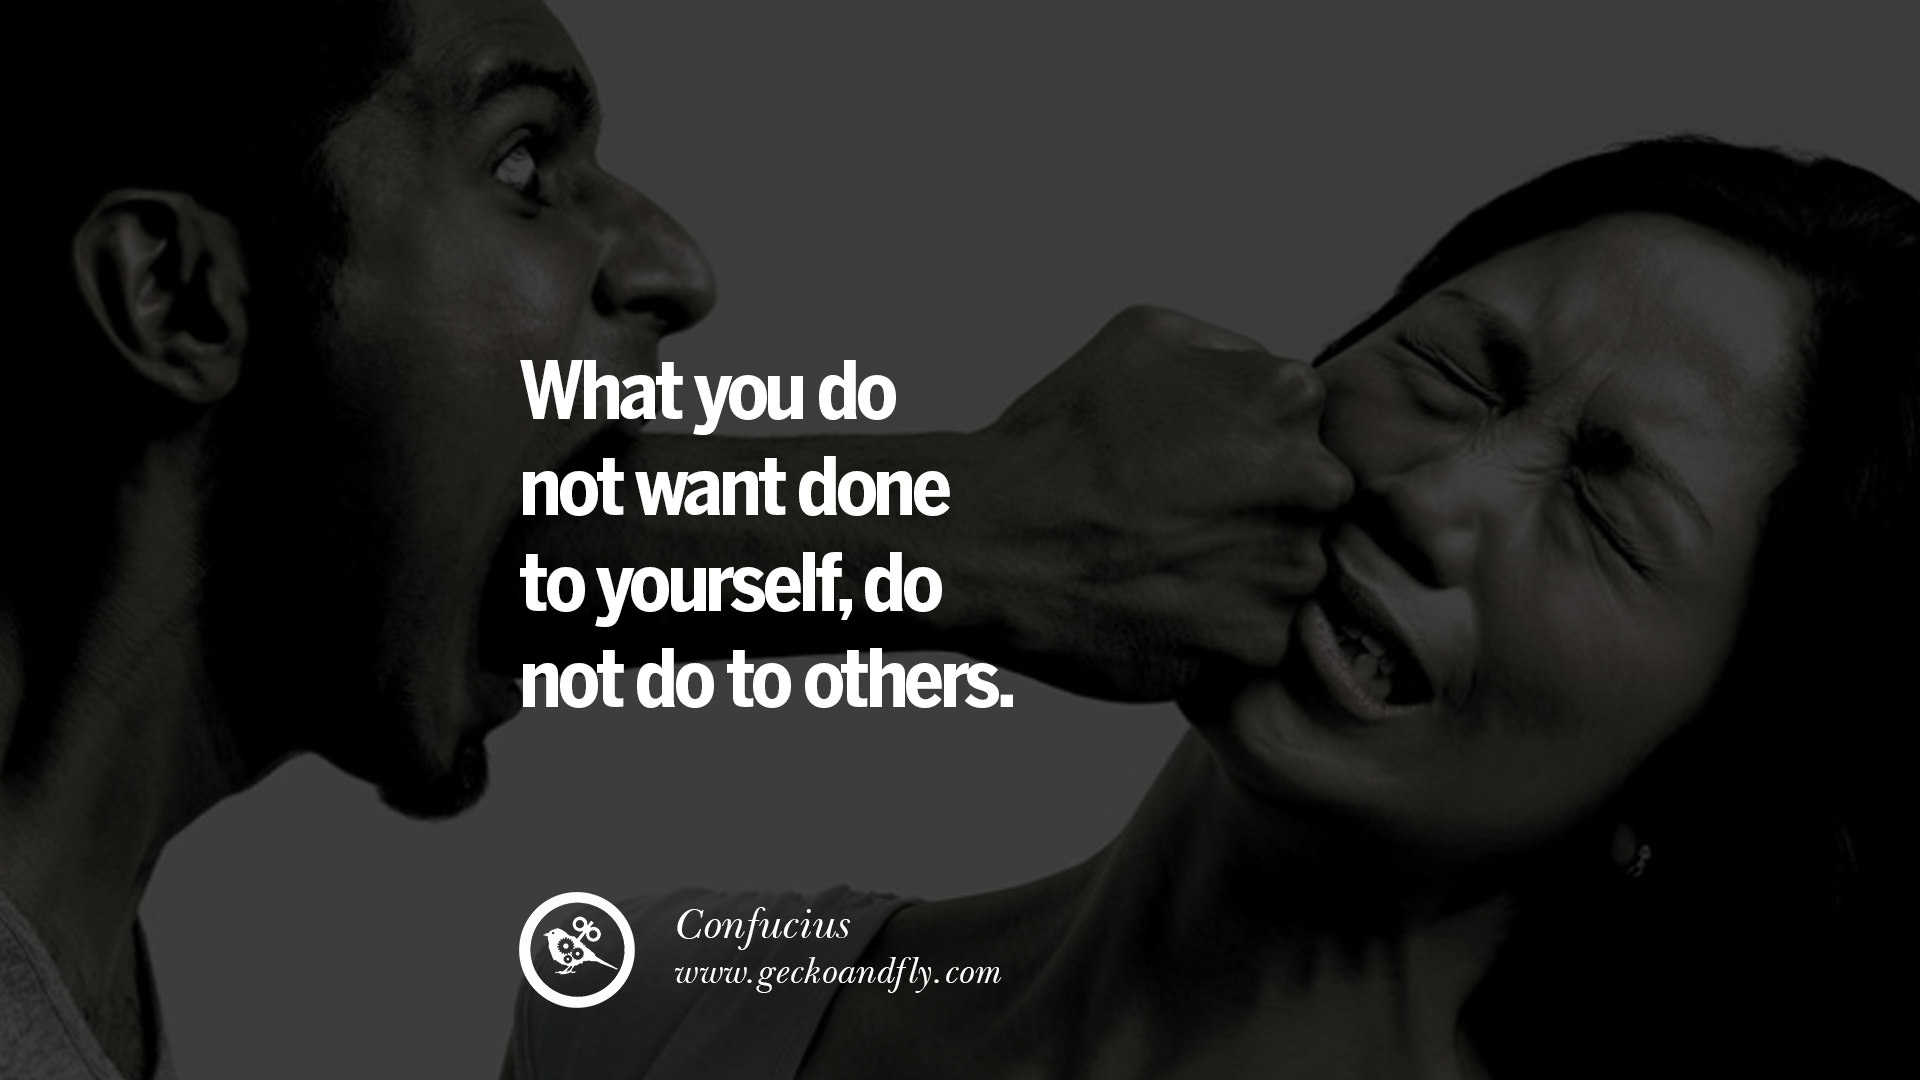 What you do not want done to yourself do not do to others